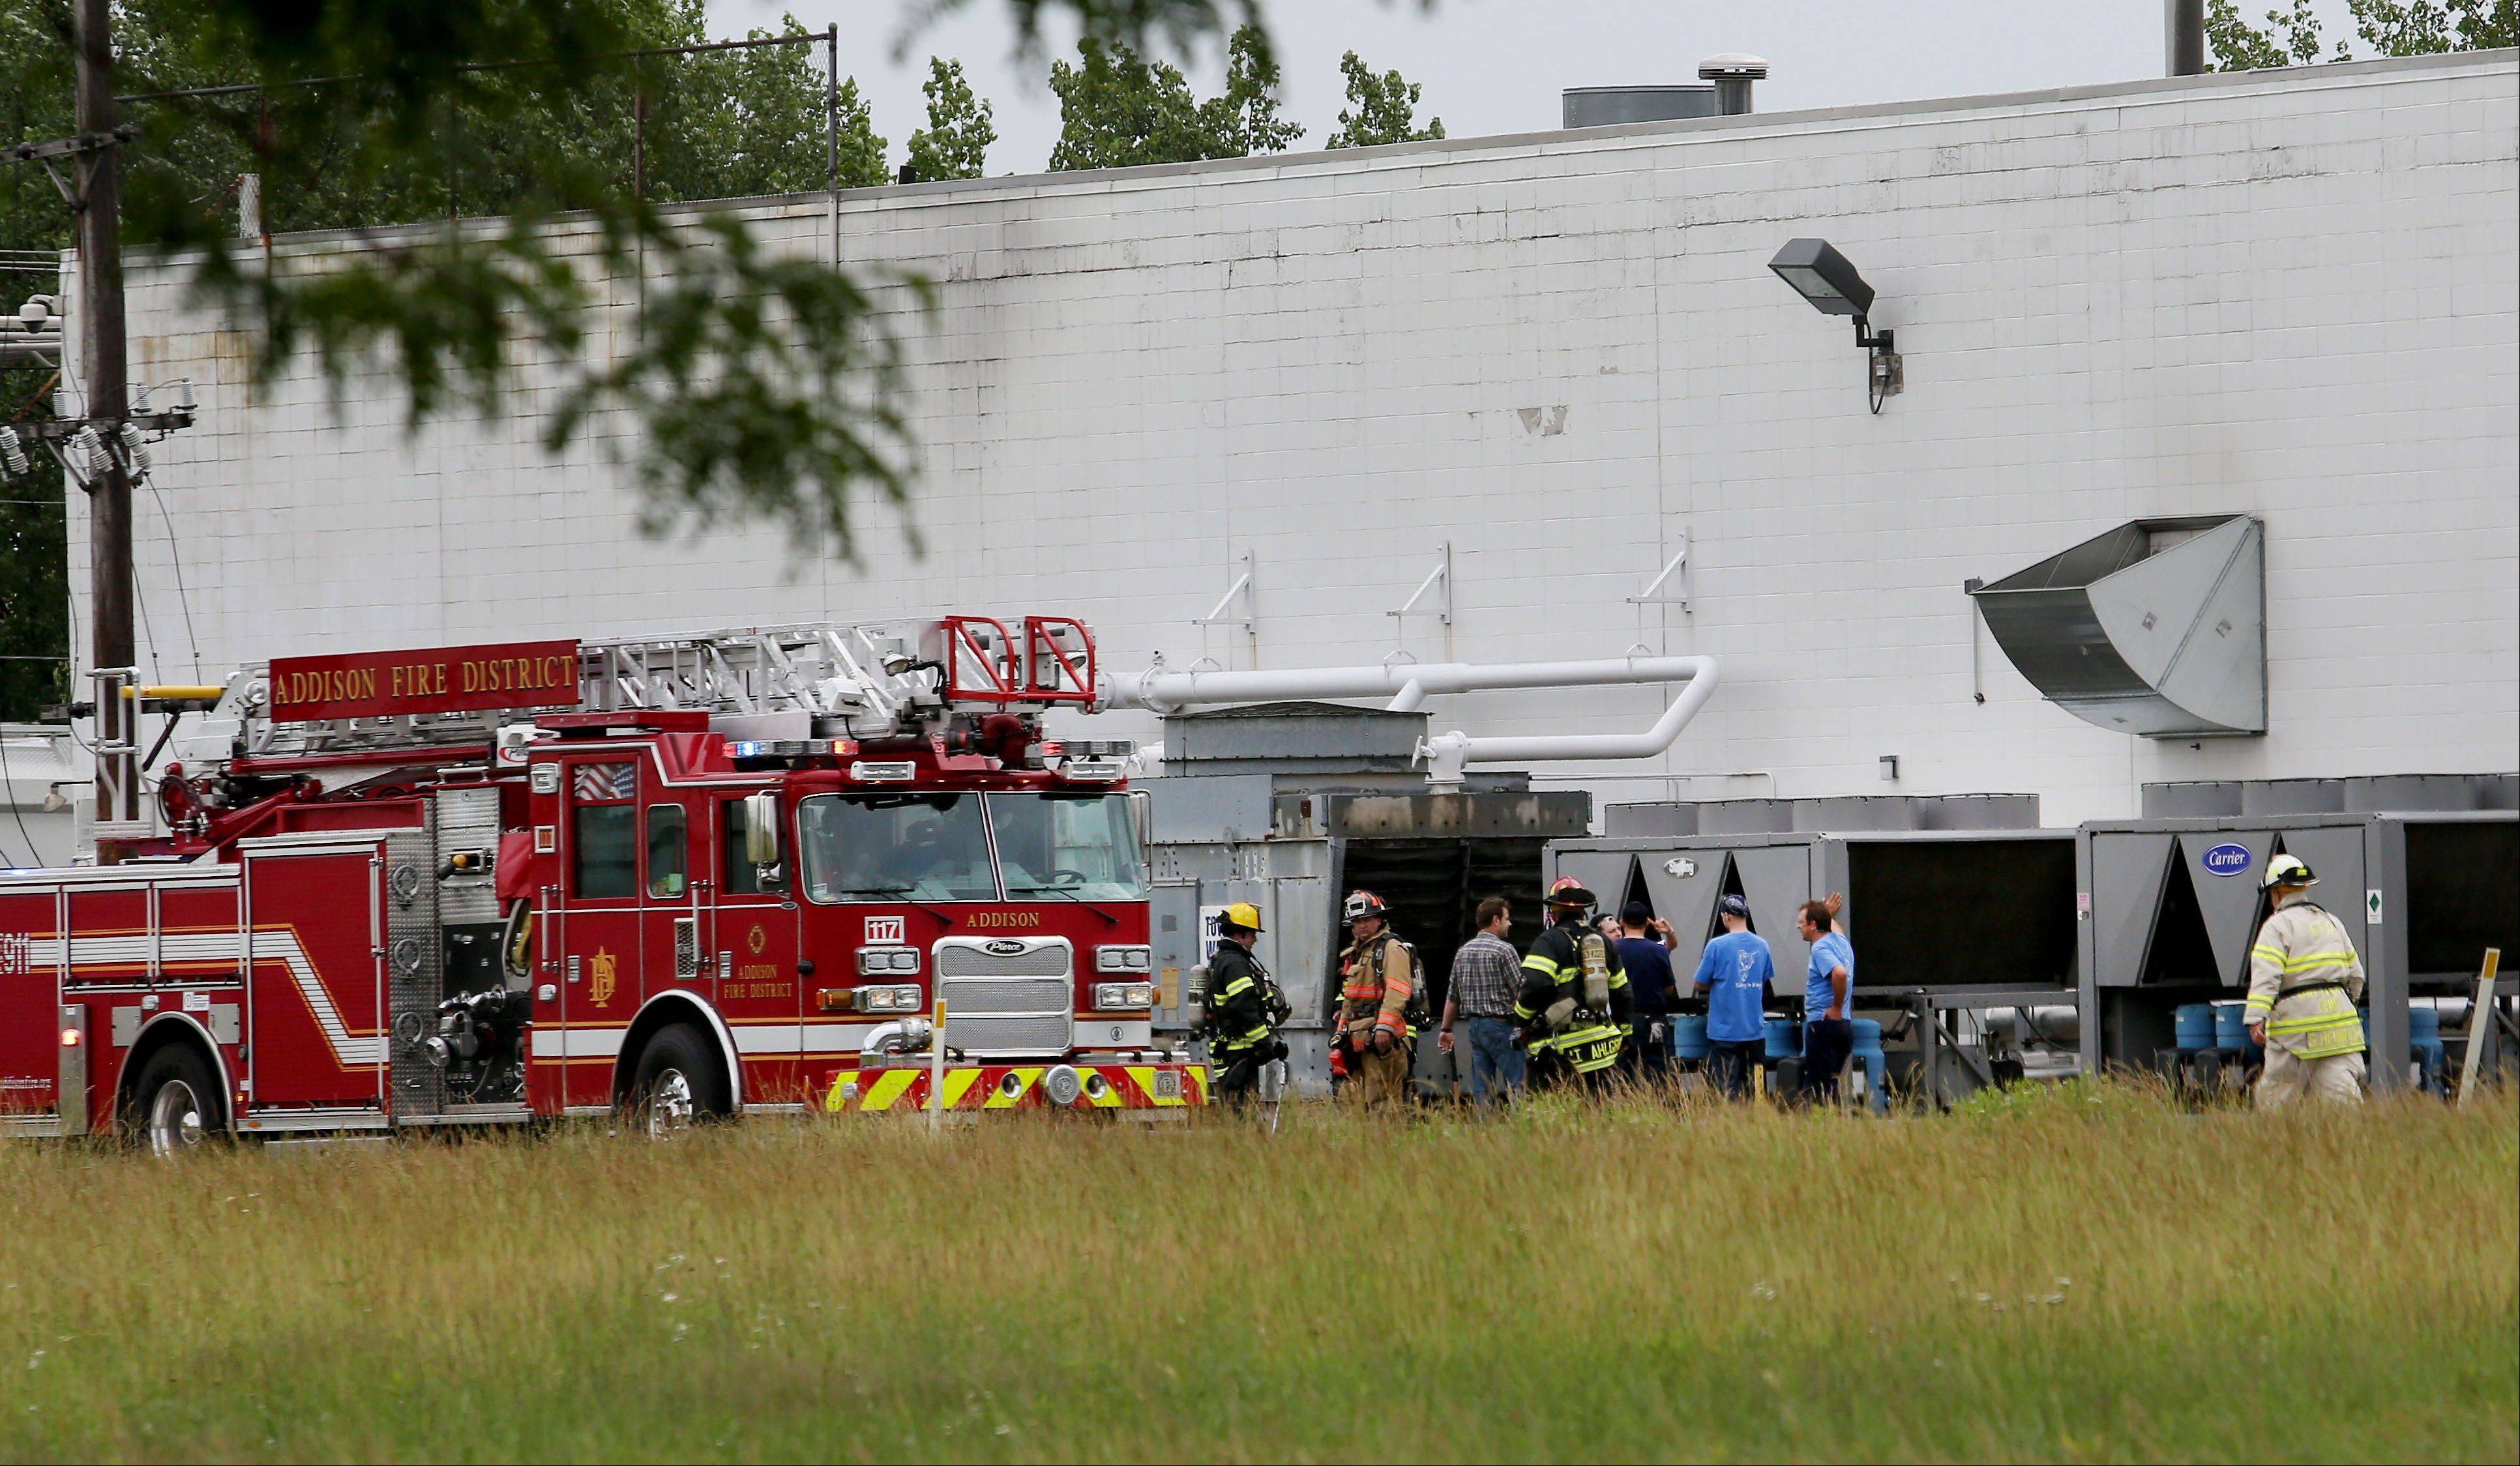 A forklift crashed into an electrical panel Wednesday at Mauser Corp. causing smoke that brought Addison firefighters to the scene. No injuries were reported.